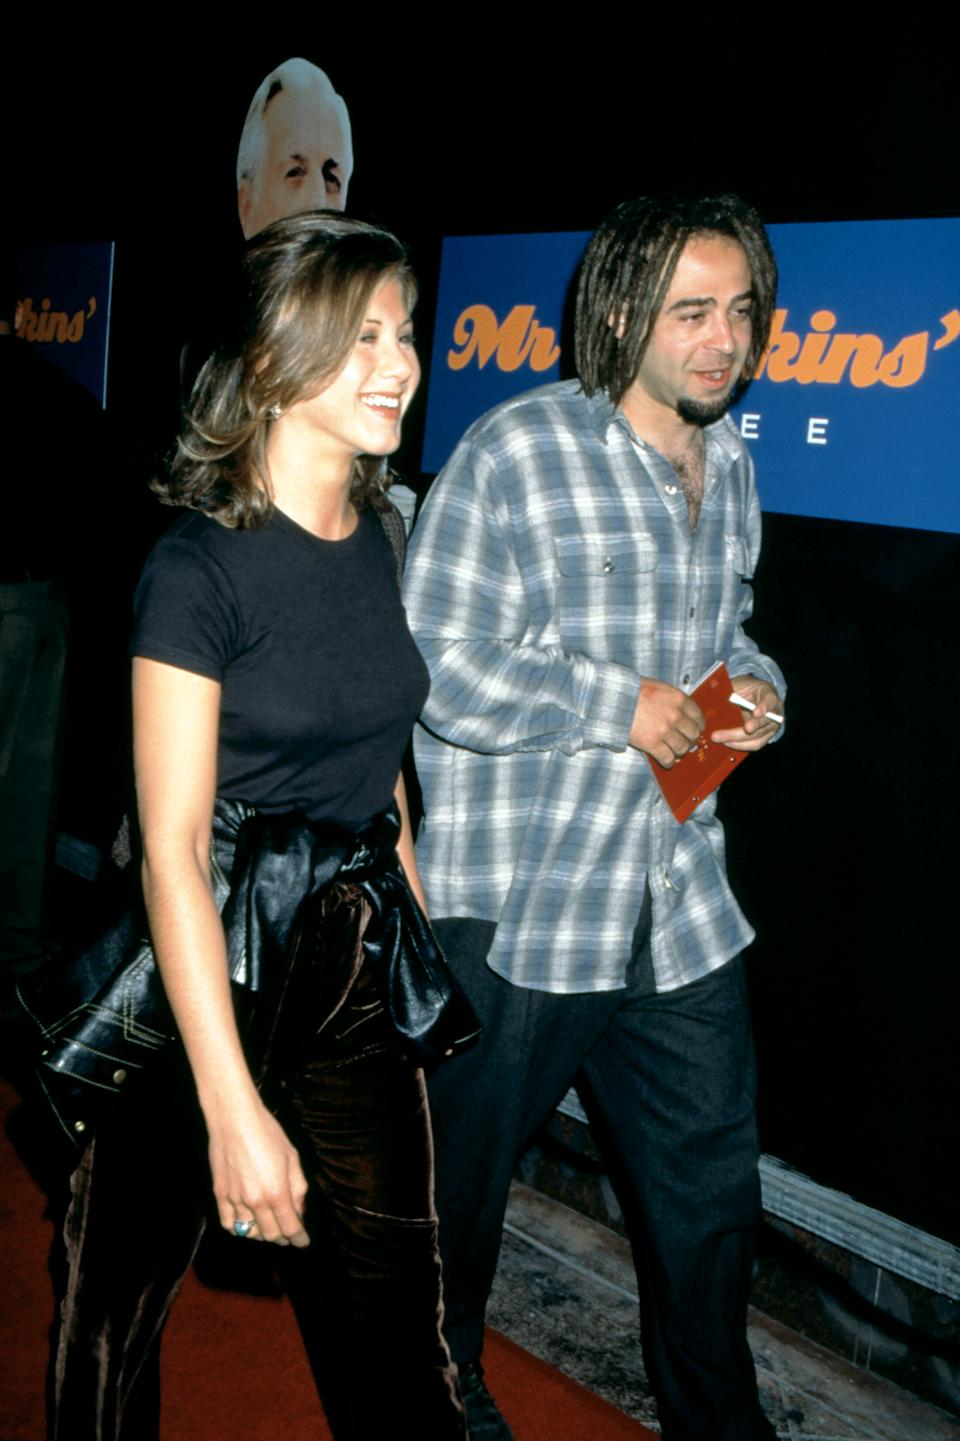 Adam Duritz and Jennifer Aniston met at the famed Viper Room. (Photo: Ron Davis/Getty Images)